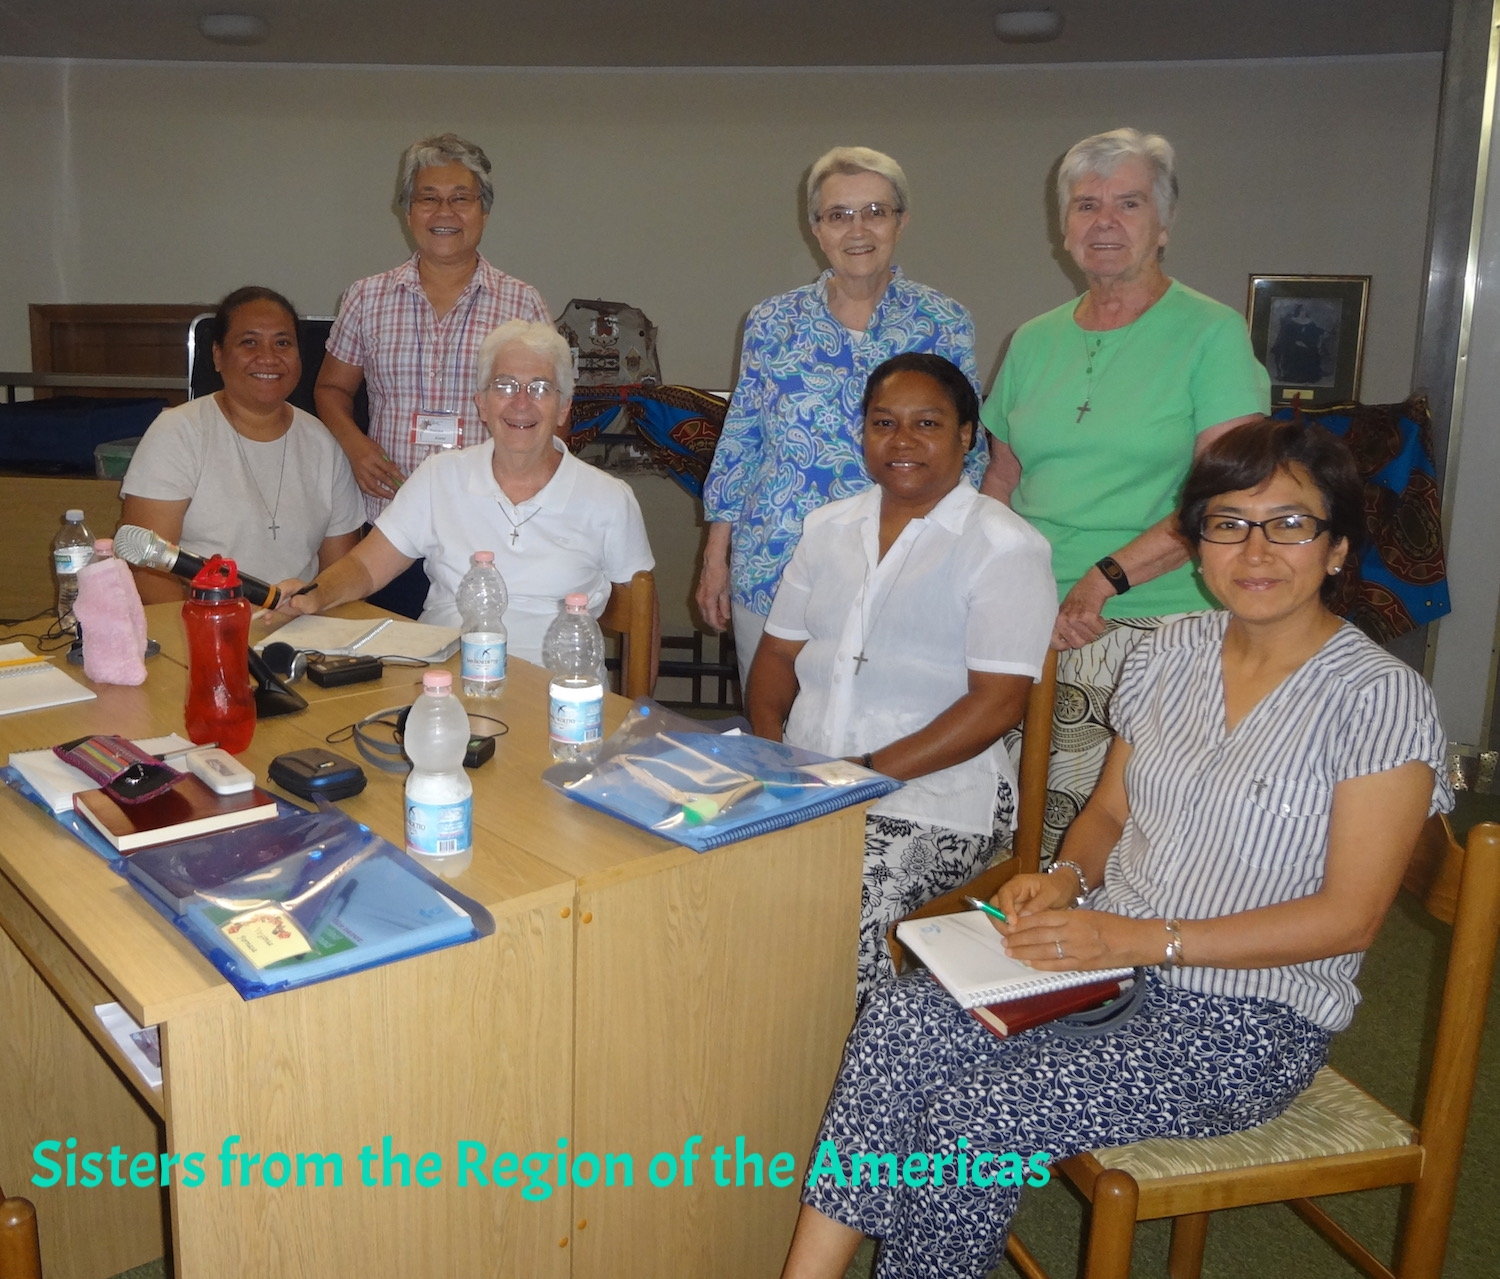 Sisters from the Region of the Americas